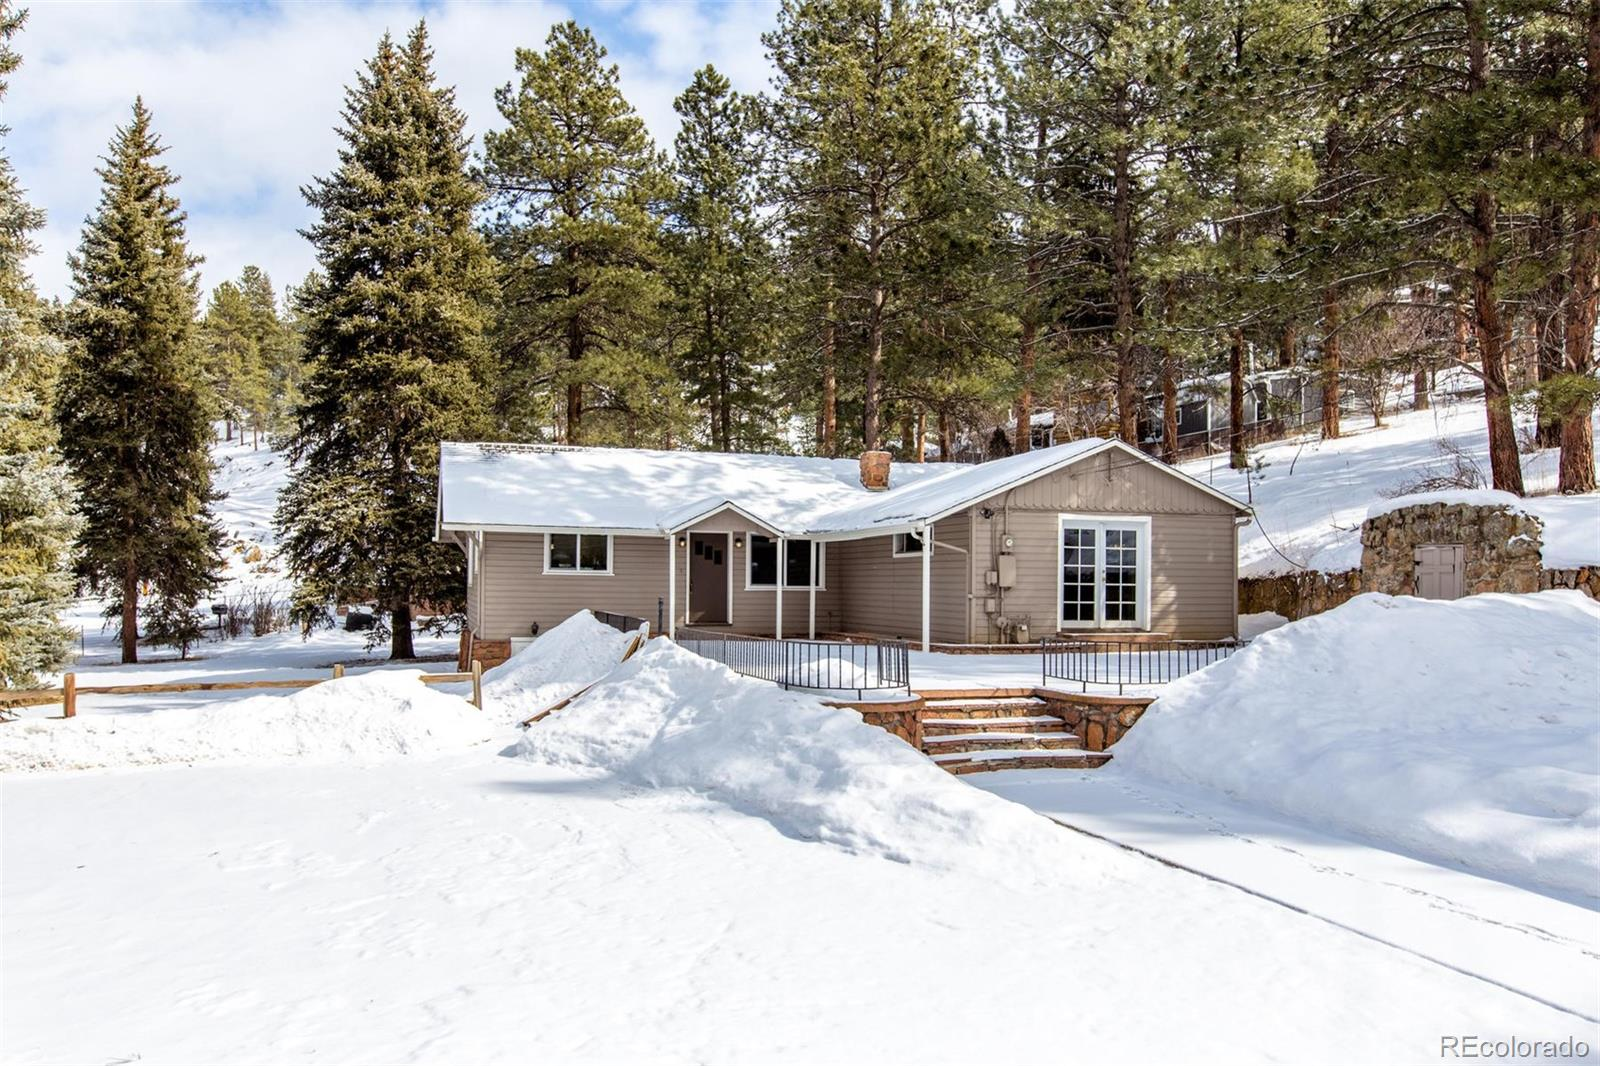 5230 County Highway 73, Evergreen, CO 80439 - Evergreen, CO real estate listing